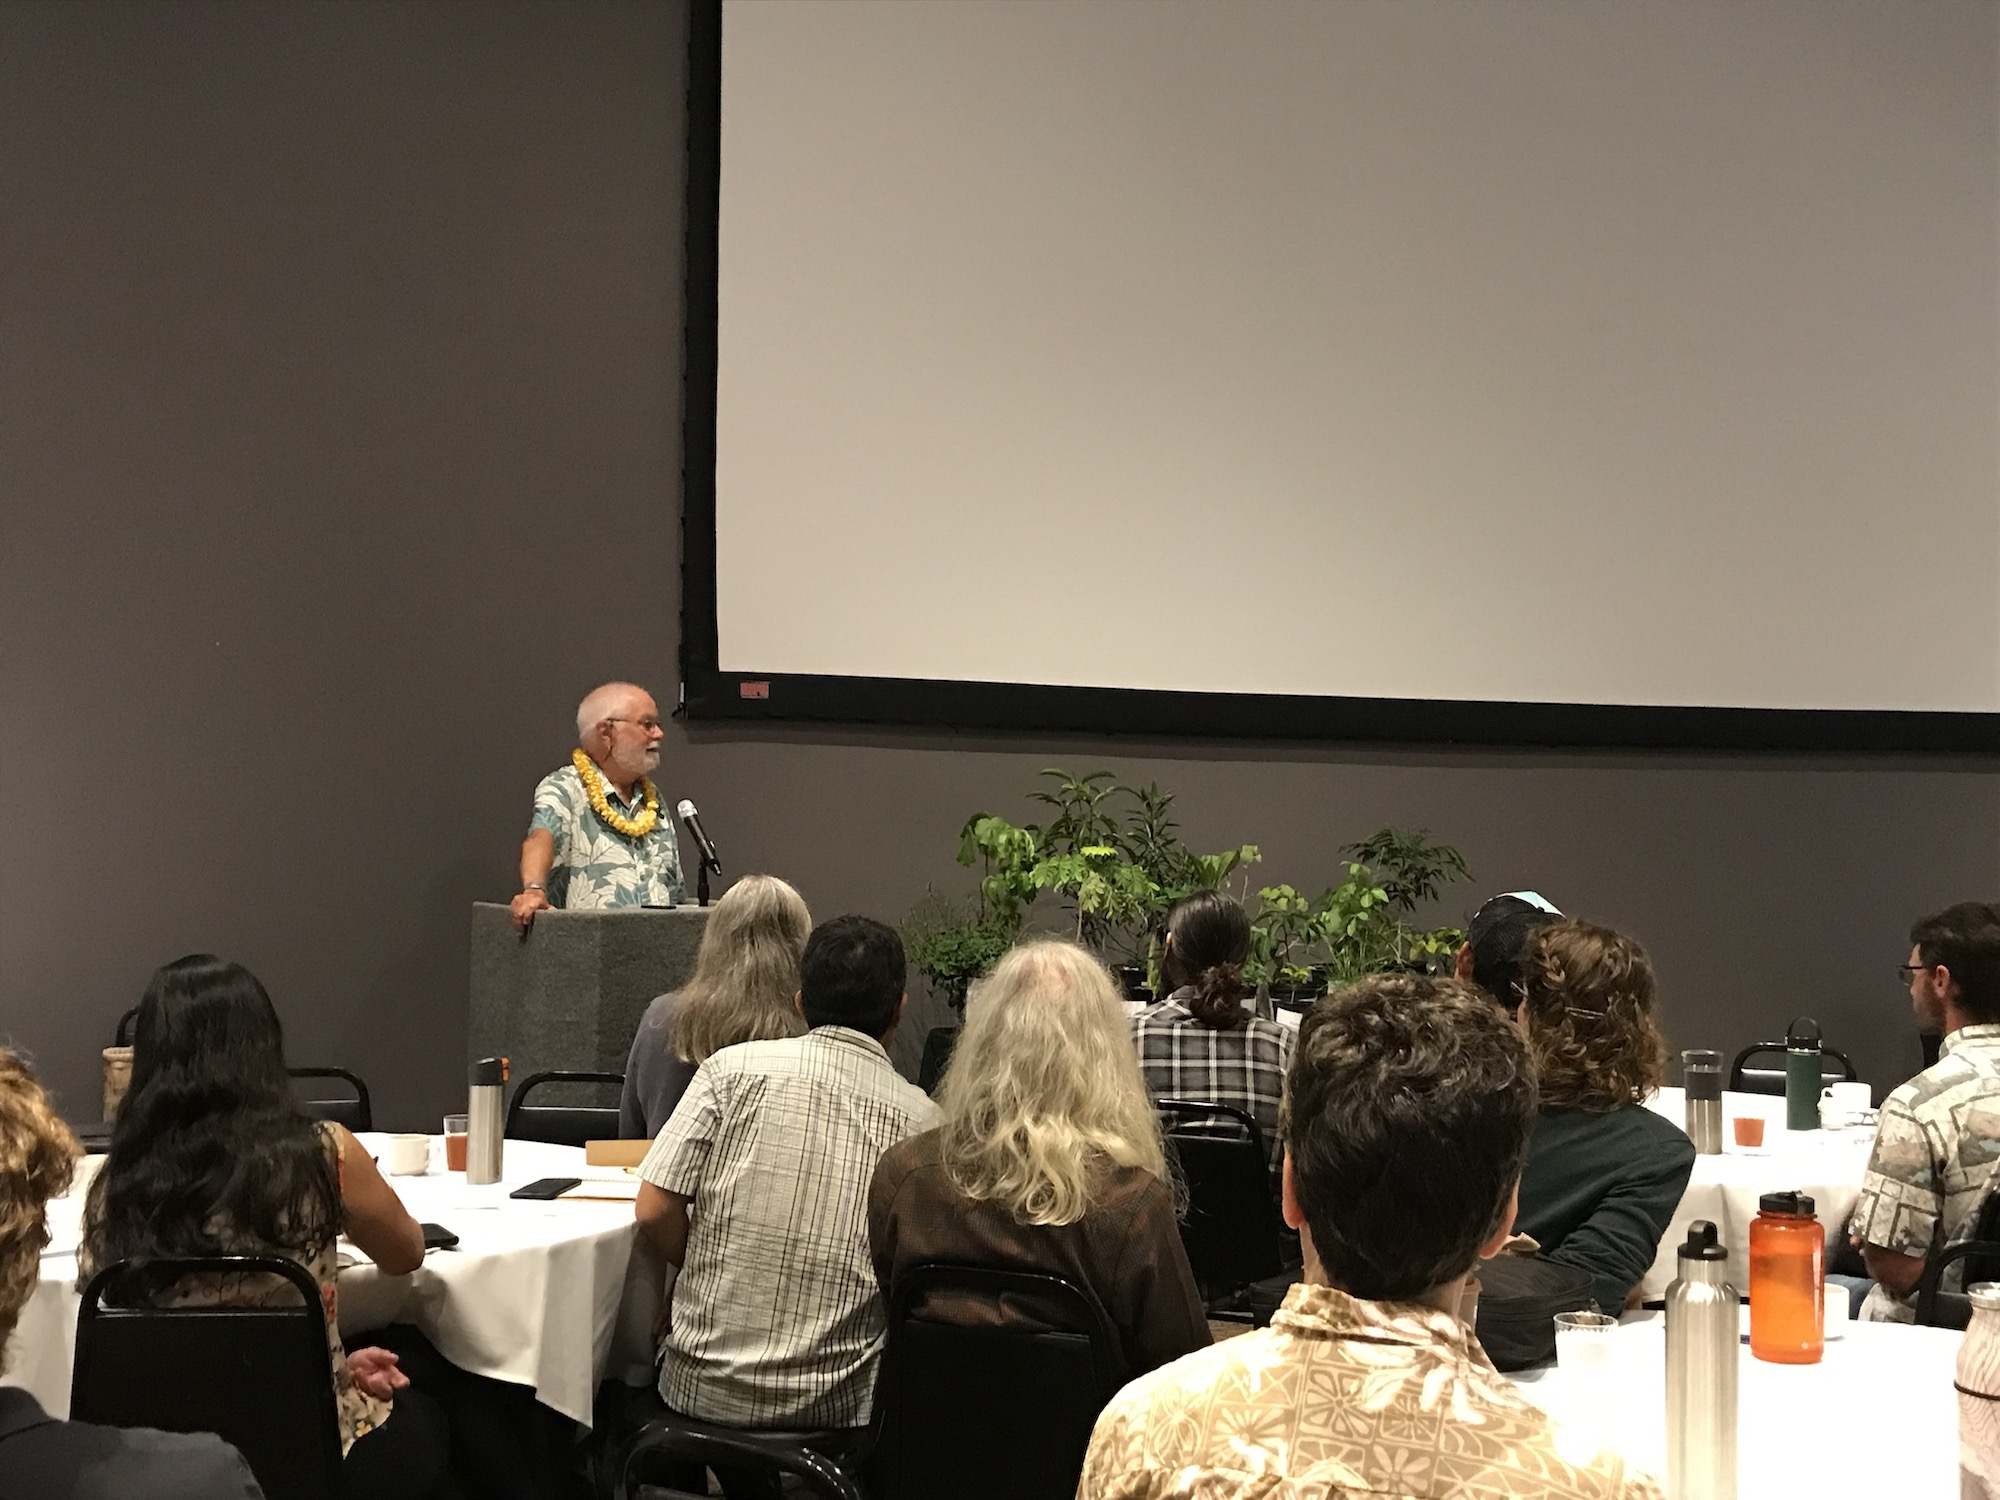 What is a dryland forest symposium without some of our favorite native plant friends??